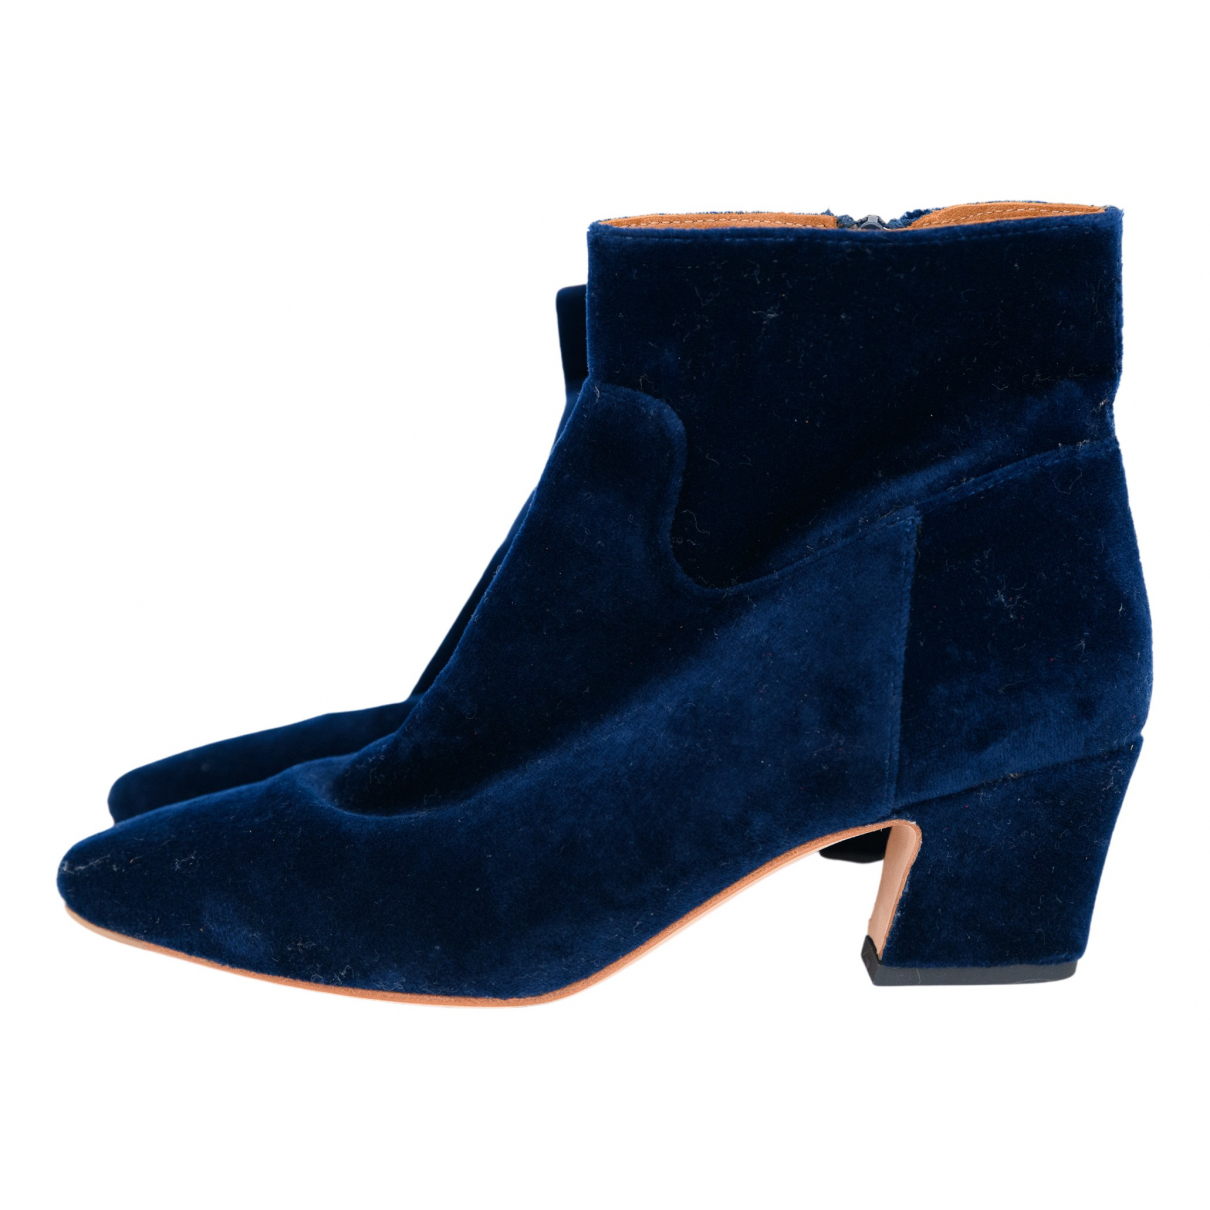 Loeffler Randall N Blue Suede Ankle boots for Women 37 IT